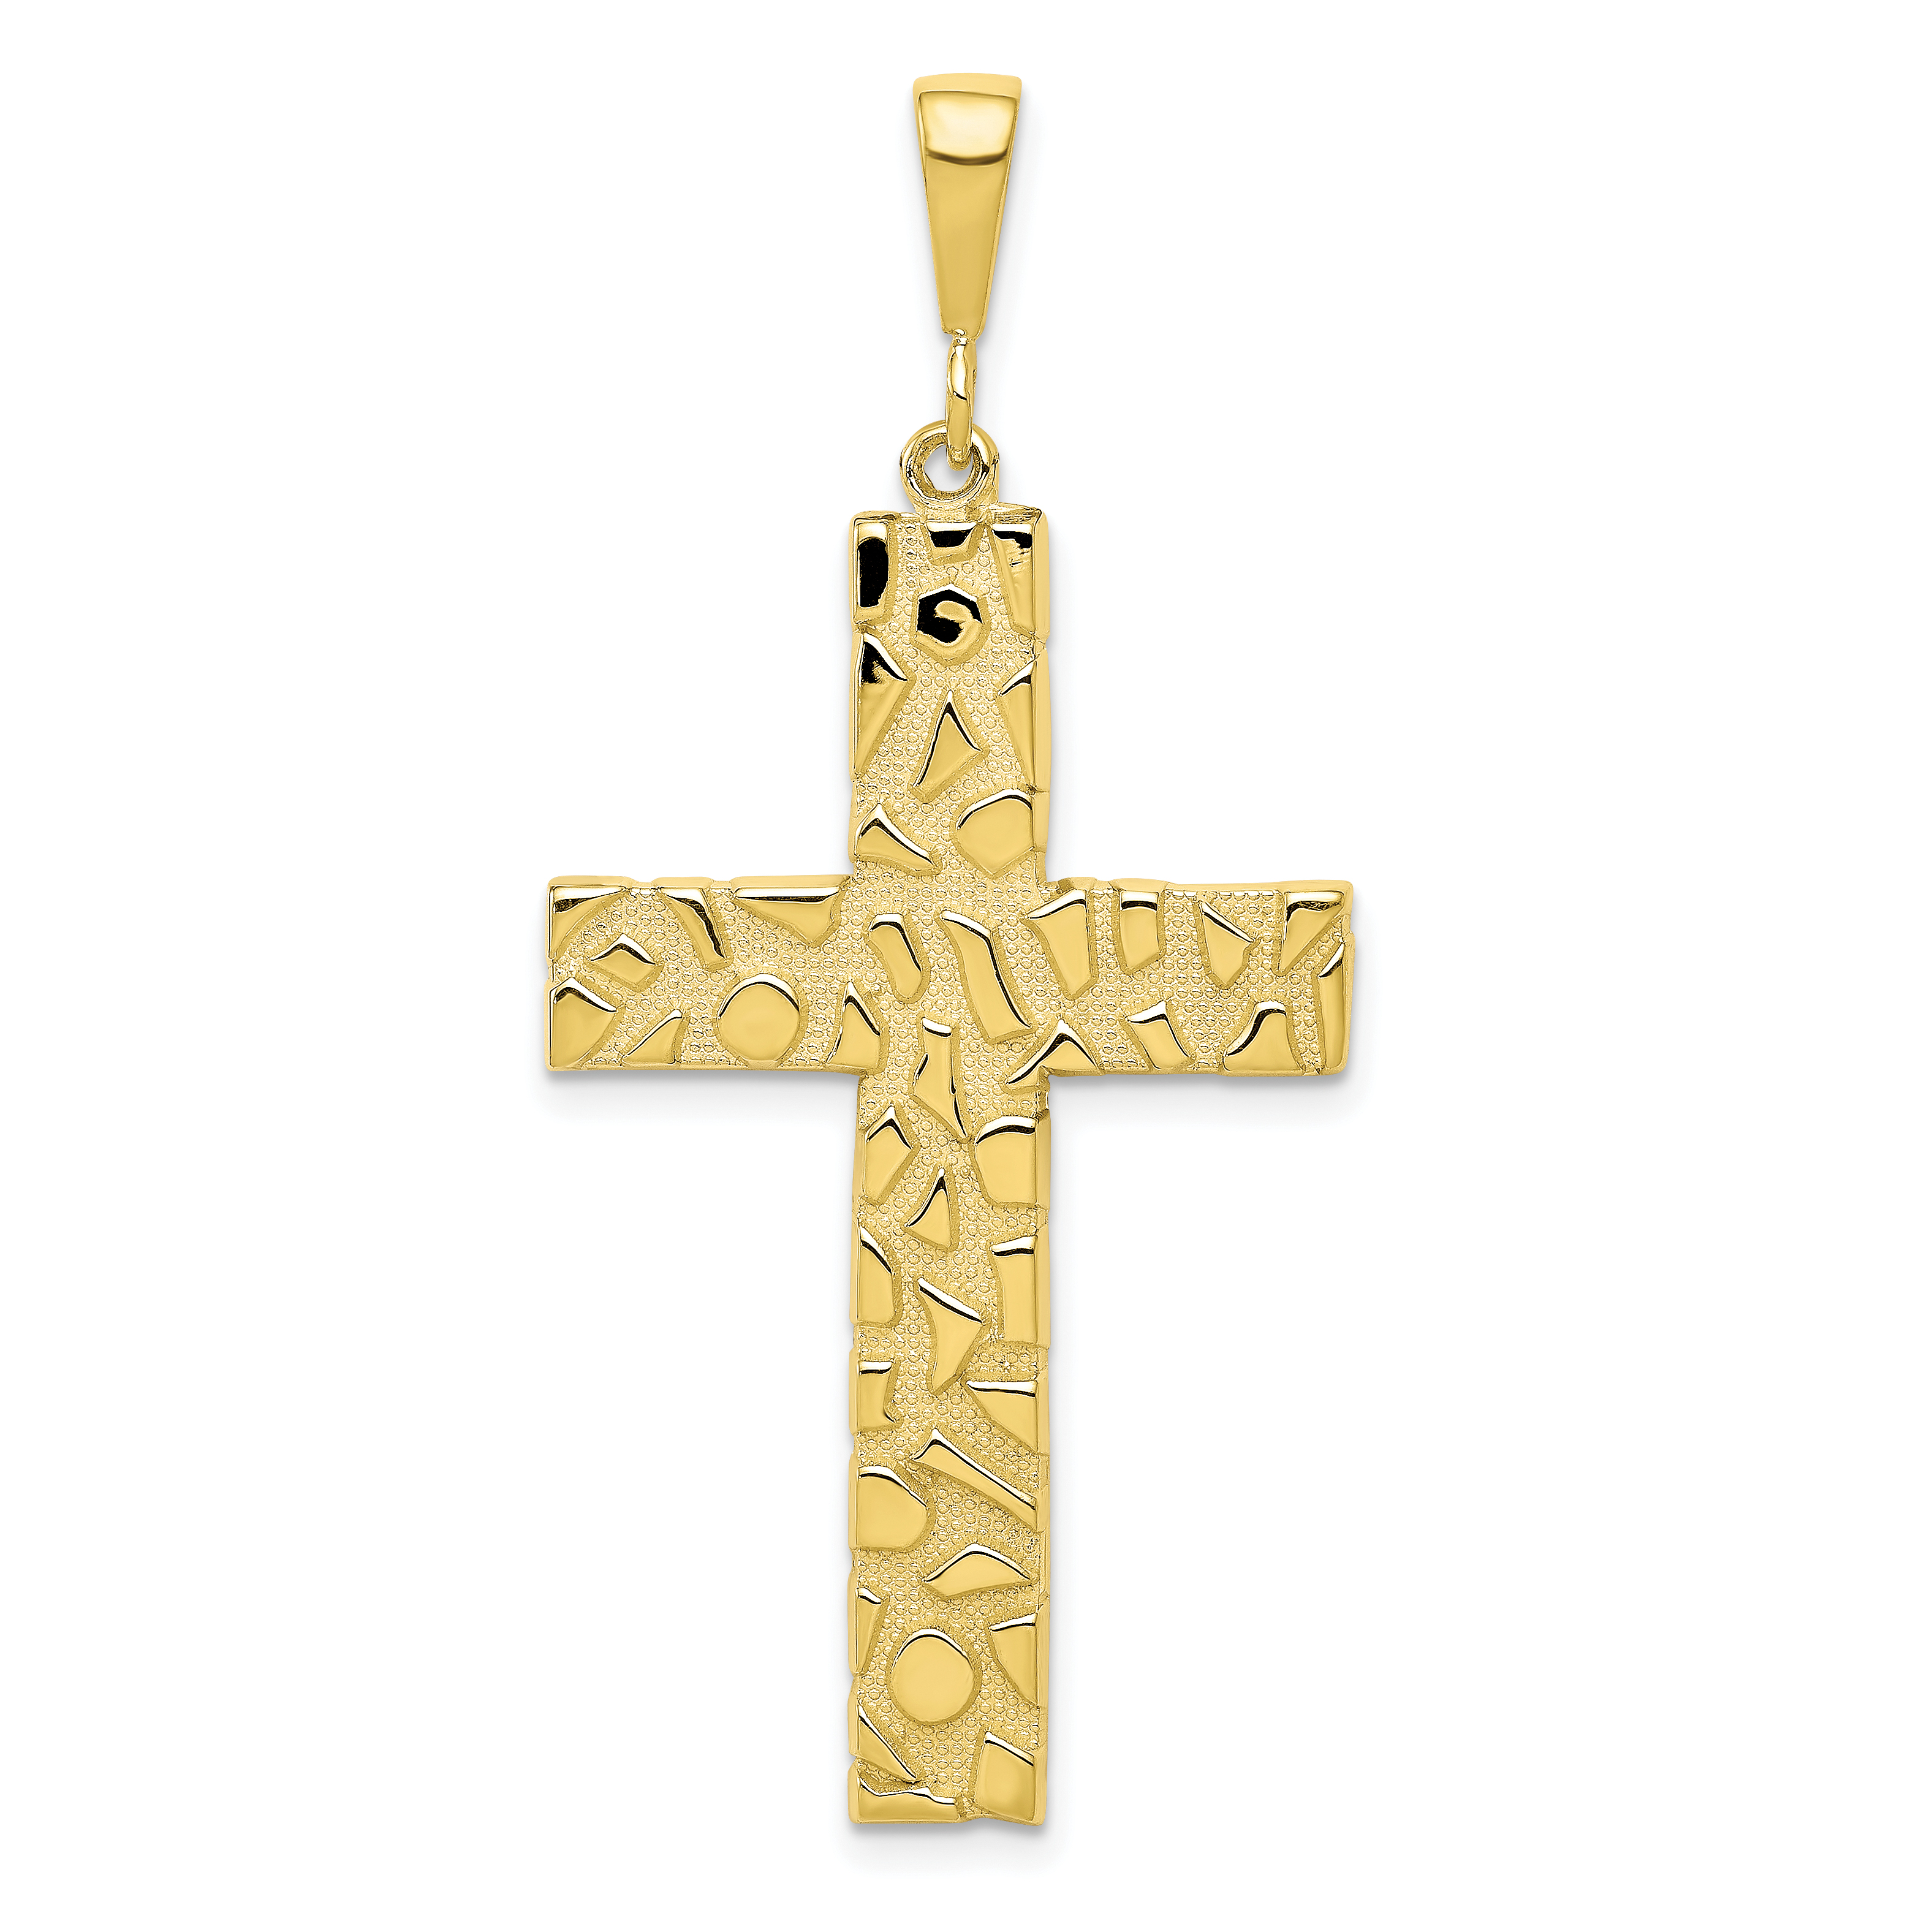 10k Yellow Gold Nugget Cross Religious Pendant Charm Necklace Latin Fine Jewelry Gifts For Women For Her - image 2 de 2